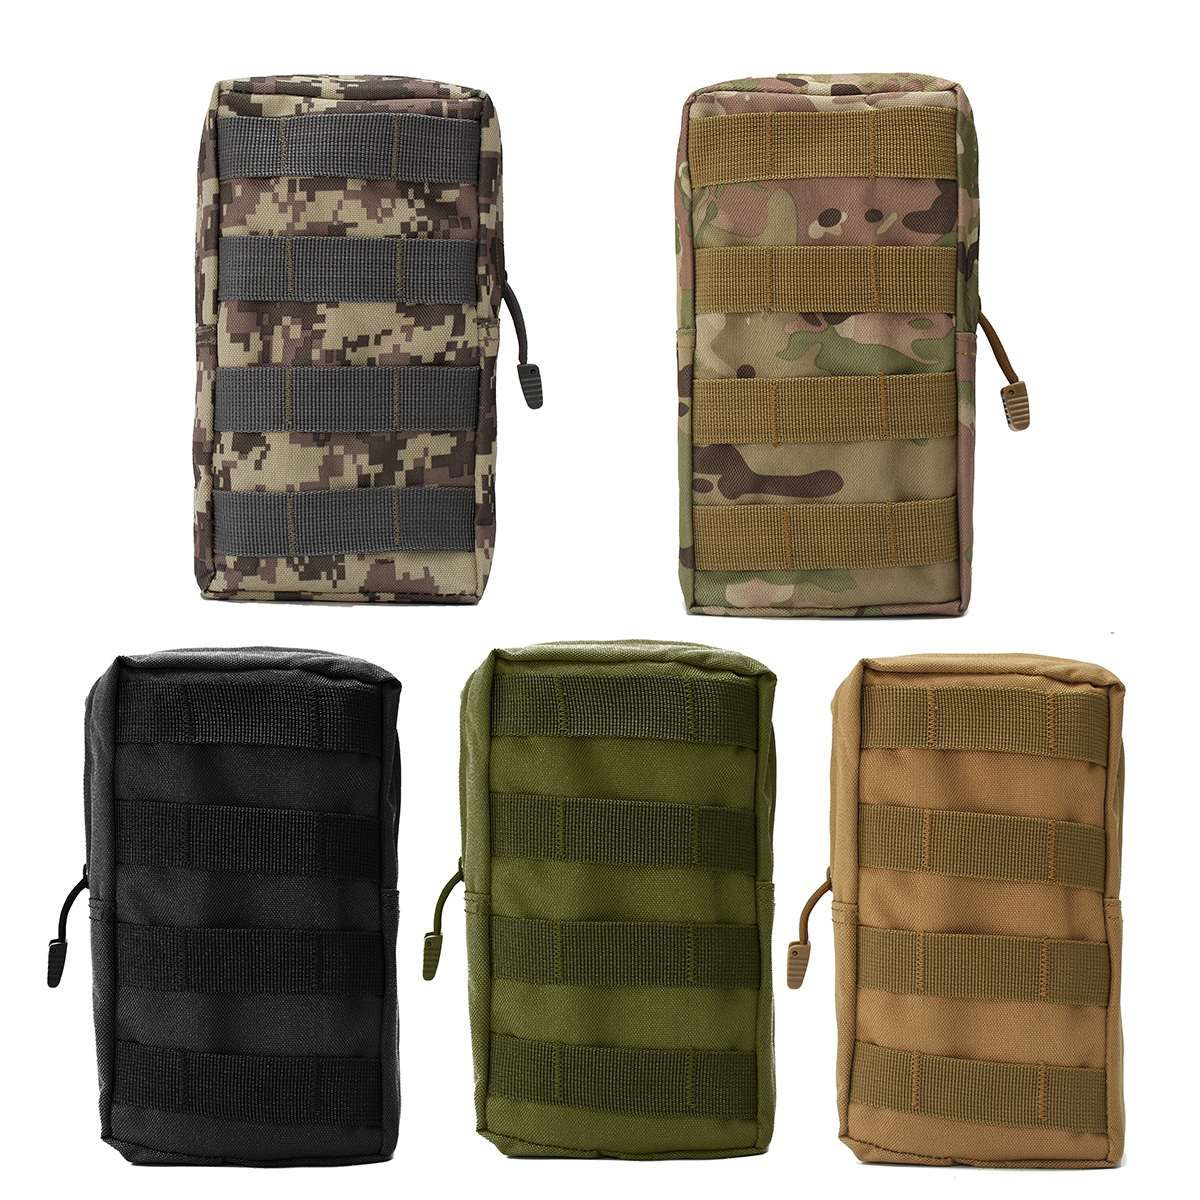 Safurance Nylon Tactical Molle Waist Bag Medical First Aid Utility Emergency Pouch Outdoor Storage Bag Emergency Kits